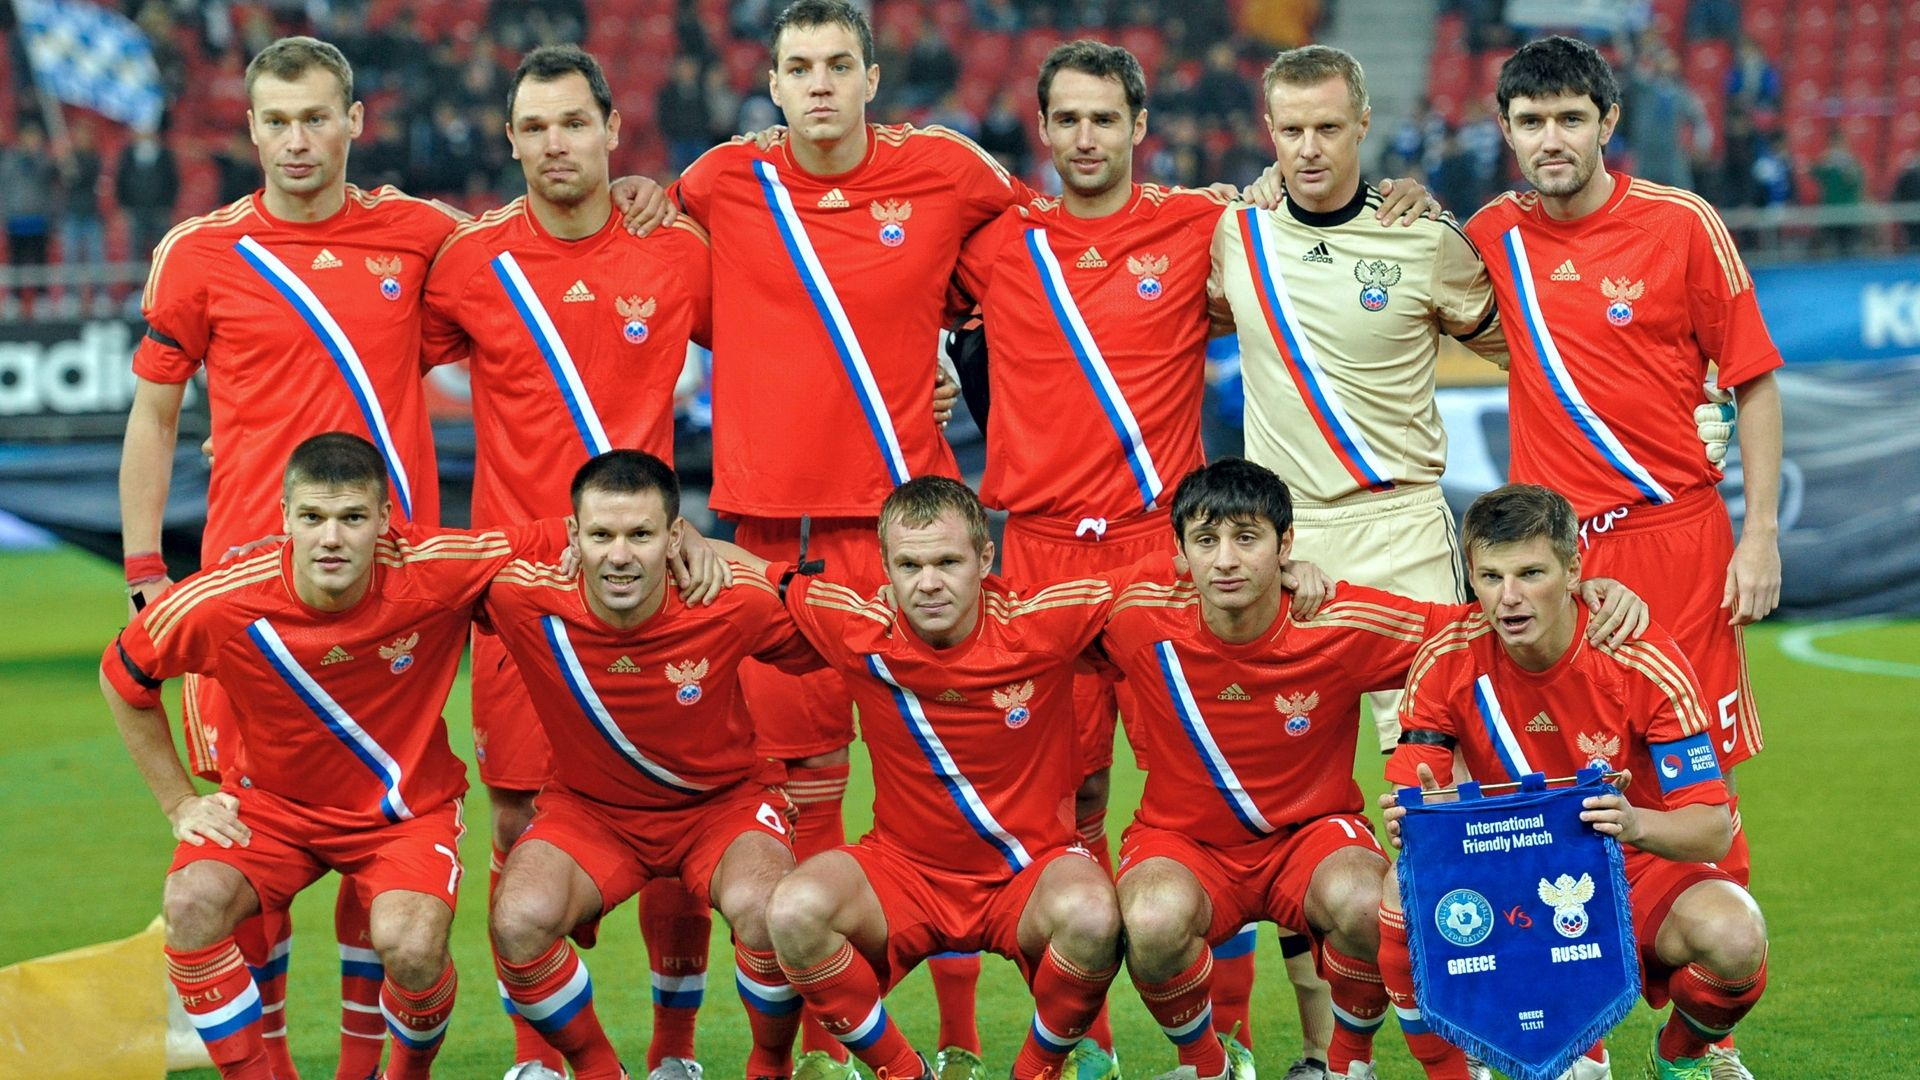 Russia Football Team Wallpapers Find Best Latest Russia Football Team Wallpapers For Your Pc Desktop Background